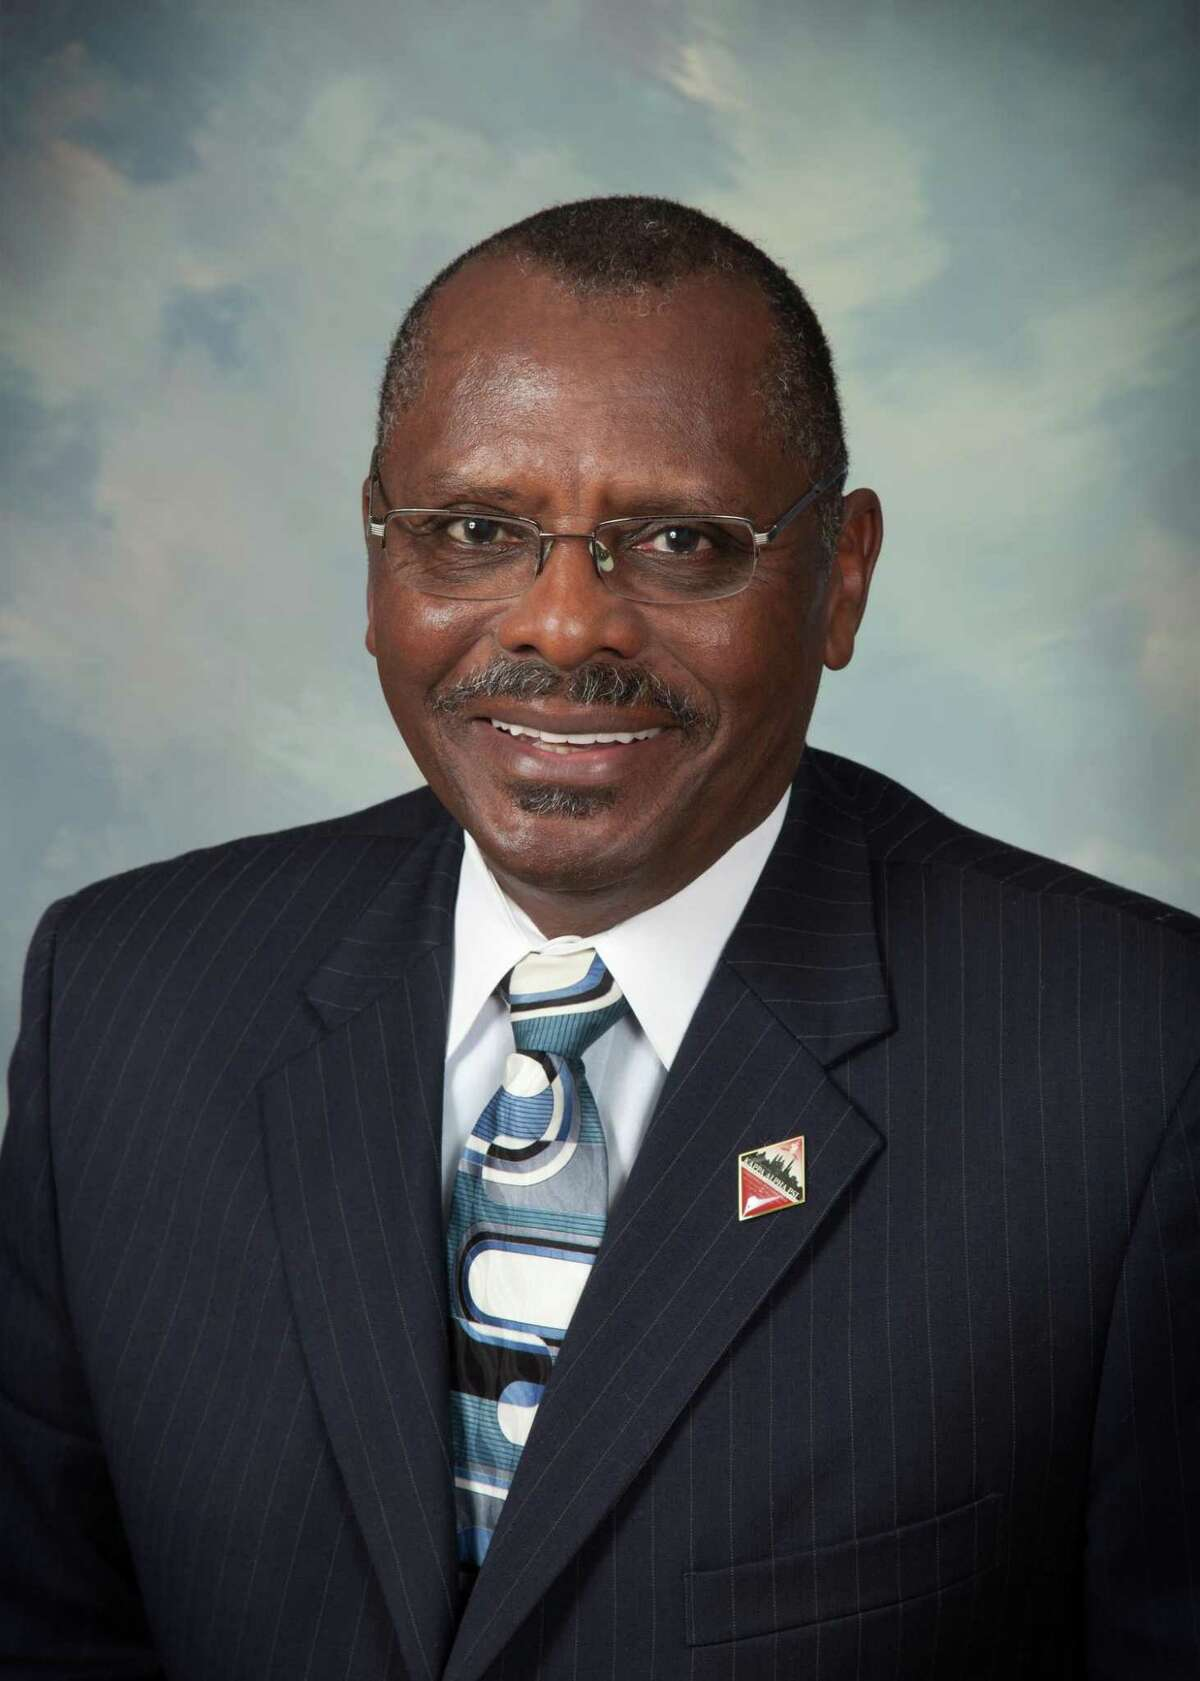 Incumbent Alton Smith, district three, is being challenged for his seat by Iesheia Ayers in the Nov. 3, 2020 election.